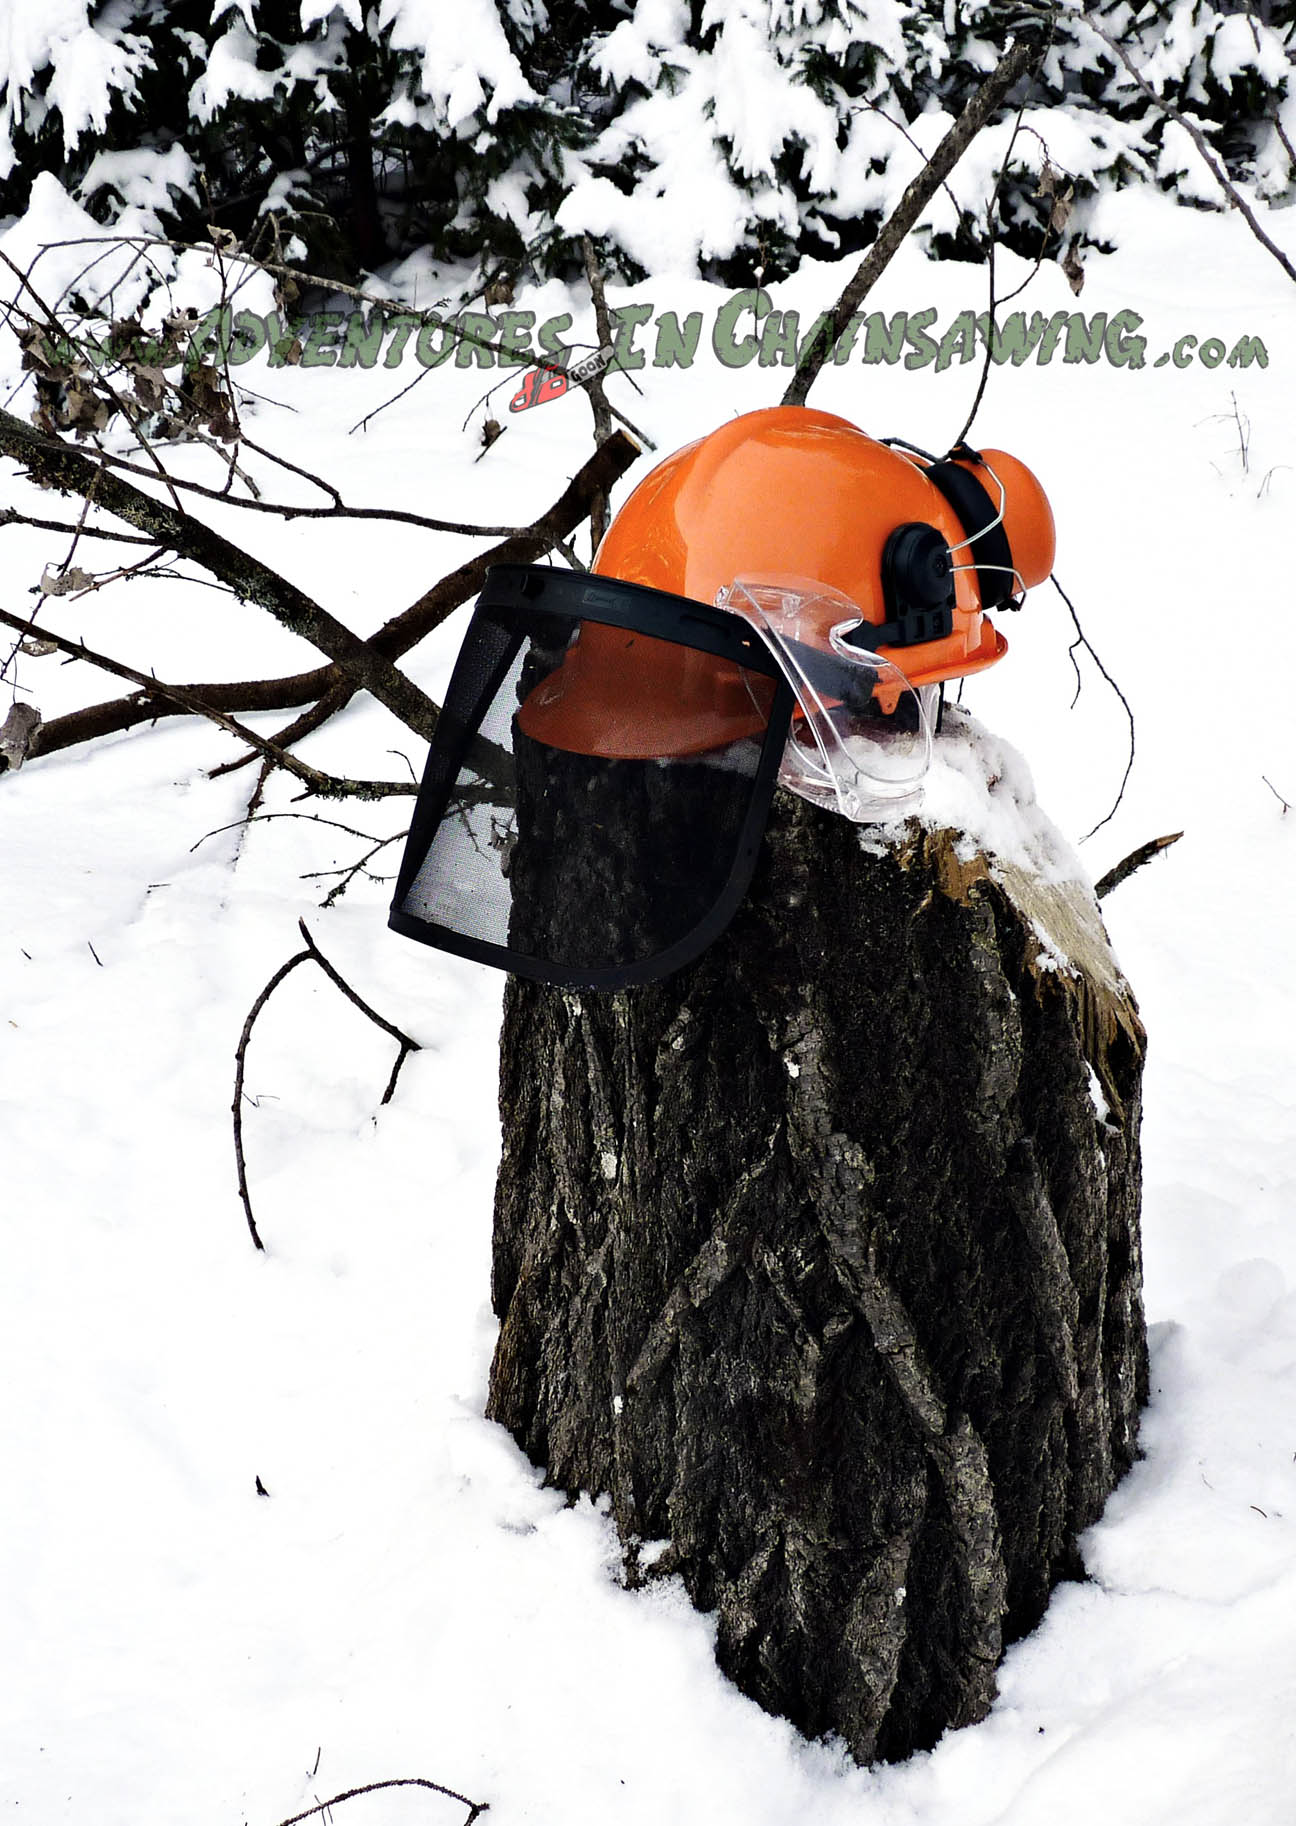 The Helmet System 25 NRR for chainsaw safety